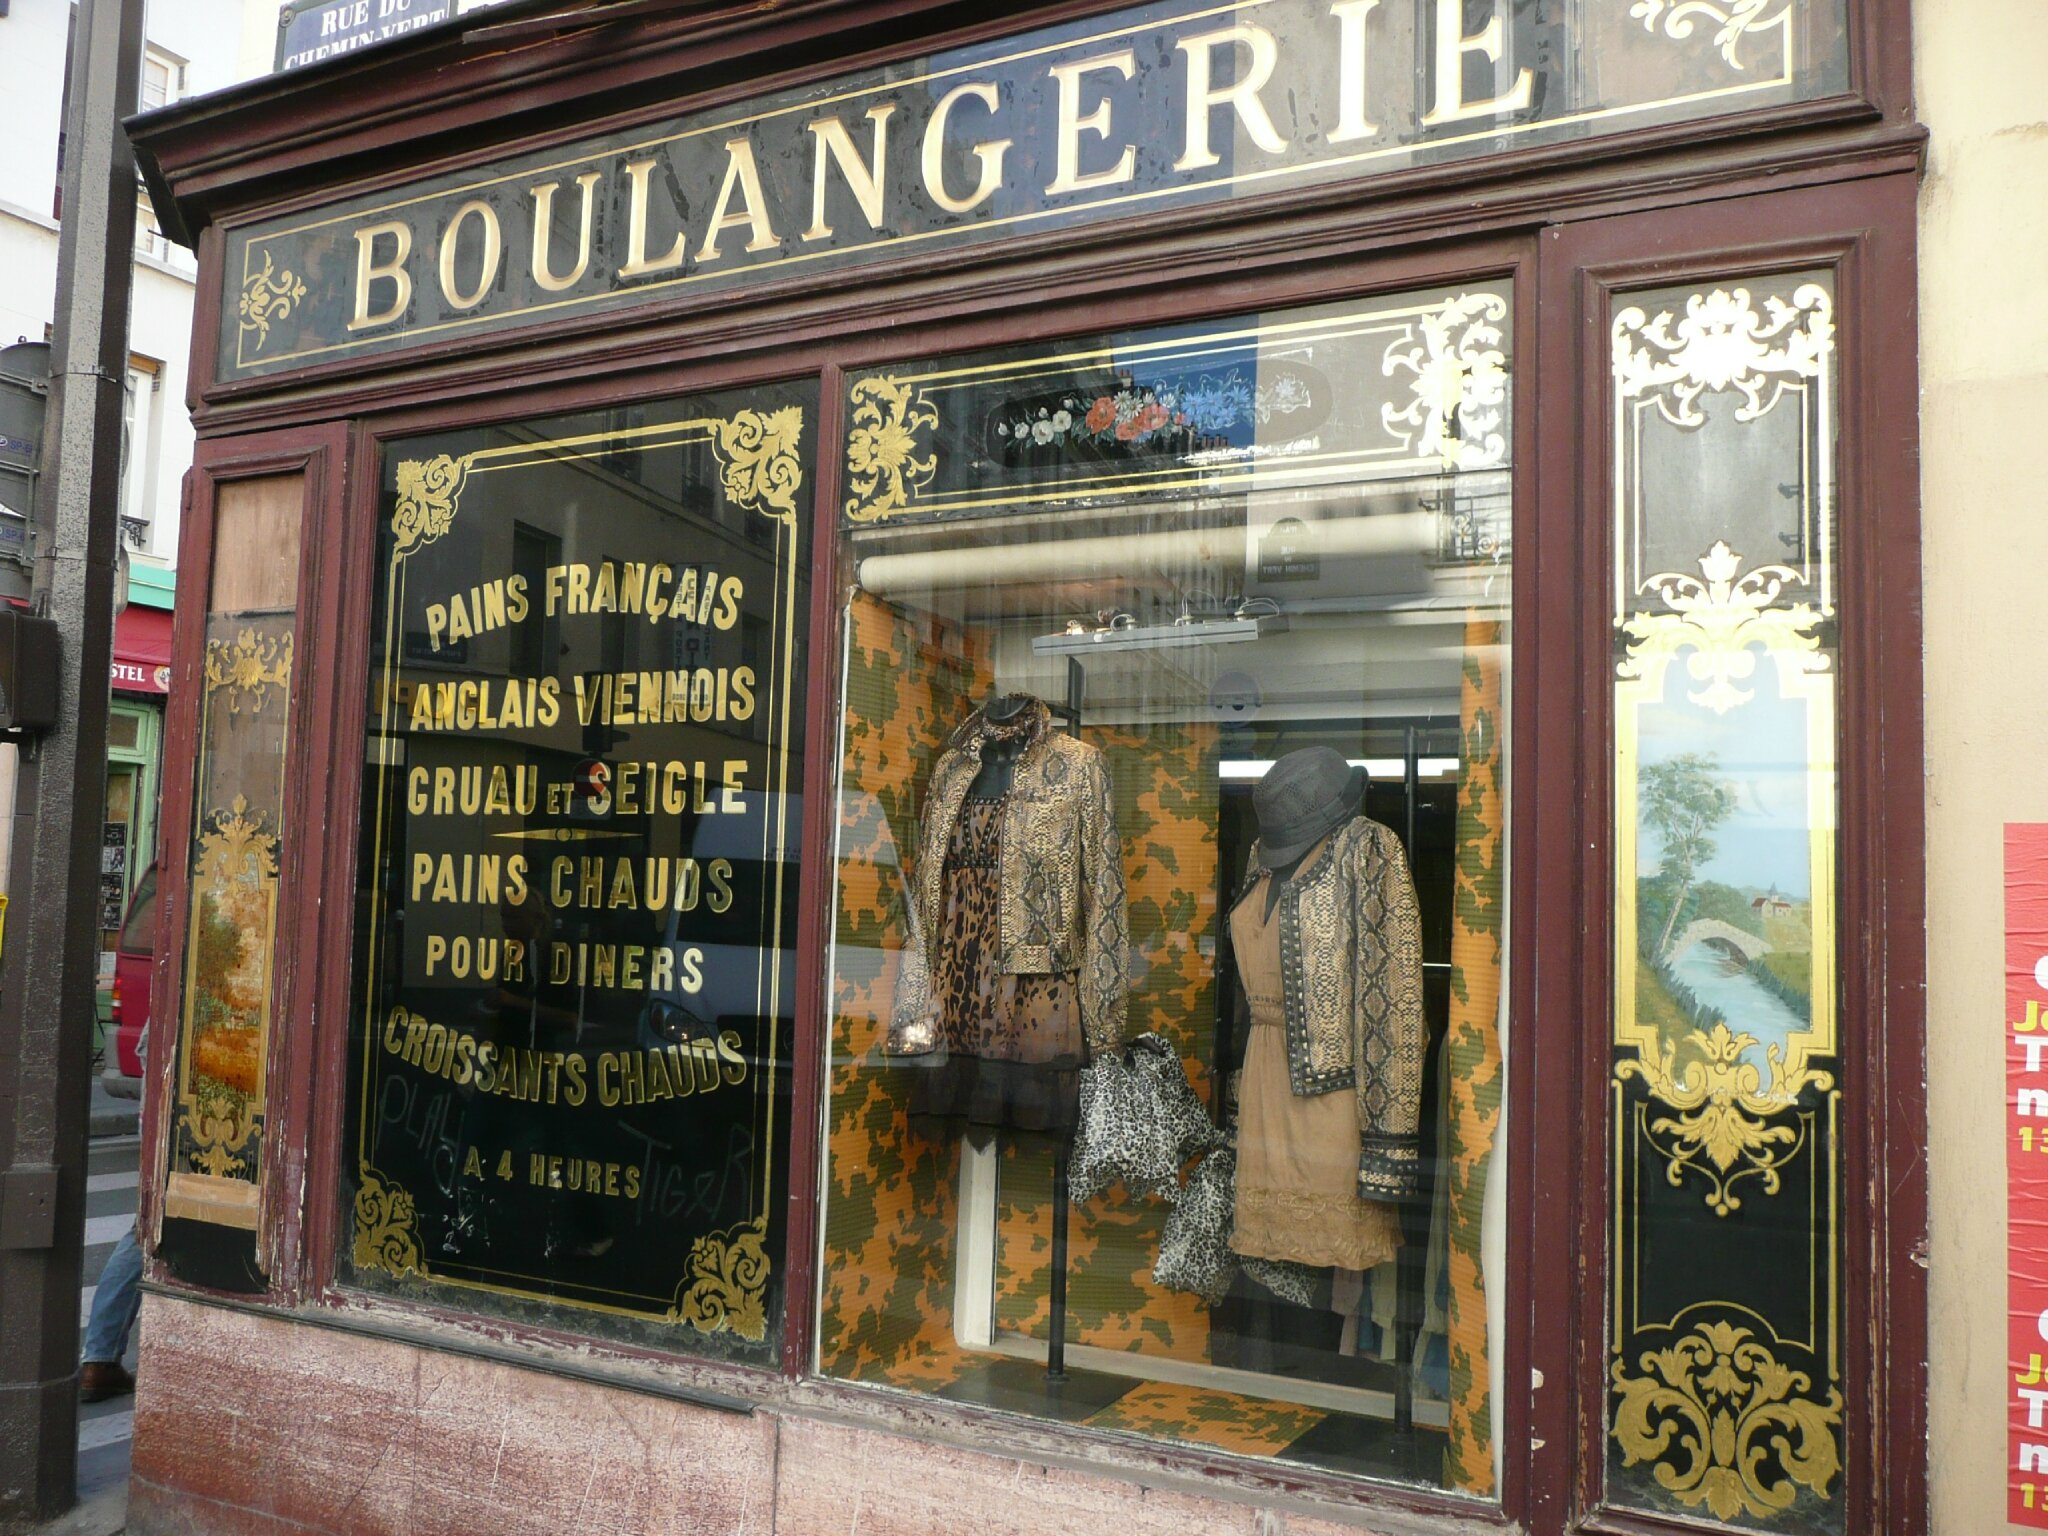 boulangerie paris 11 habillement humour photo devanture vitrine magasin viennois croissant. Black Bedroom Furniture Sets. Home Design Ideas